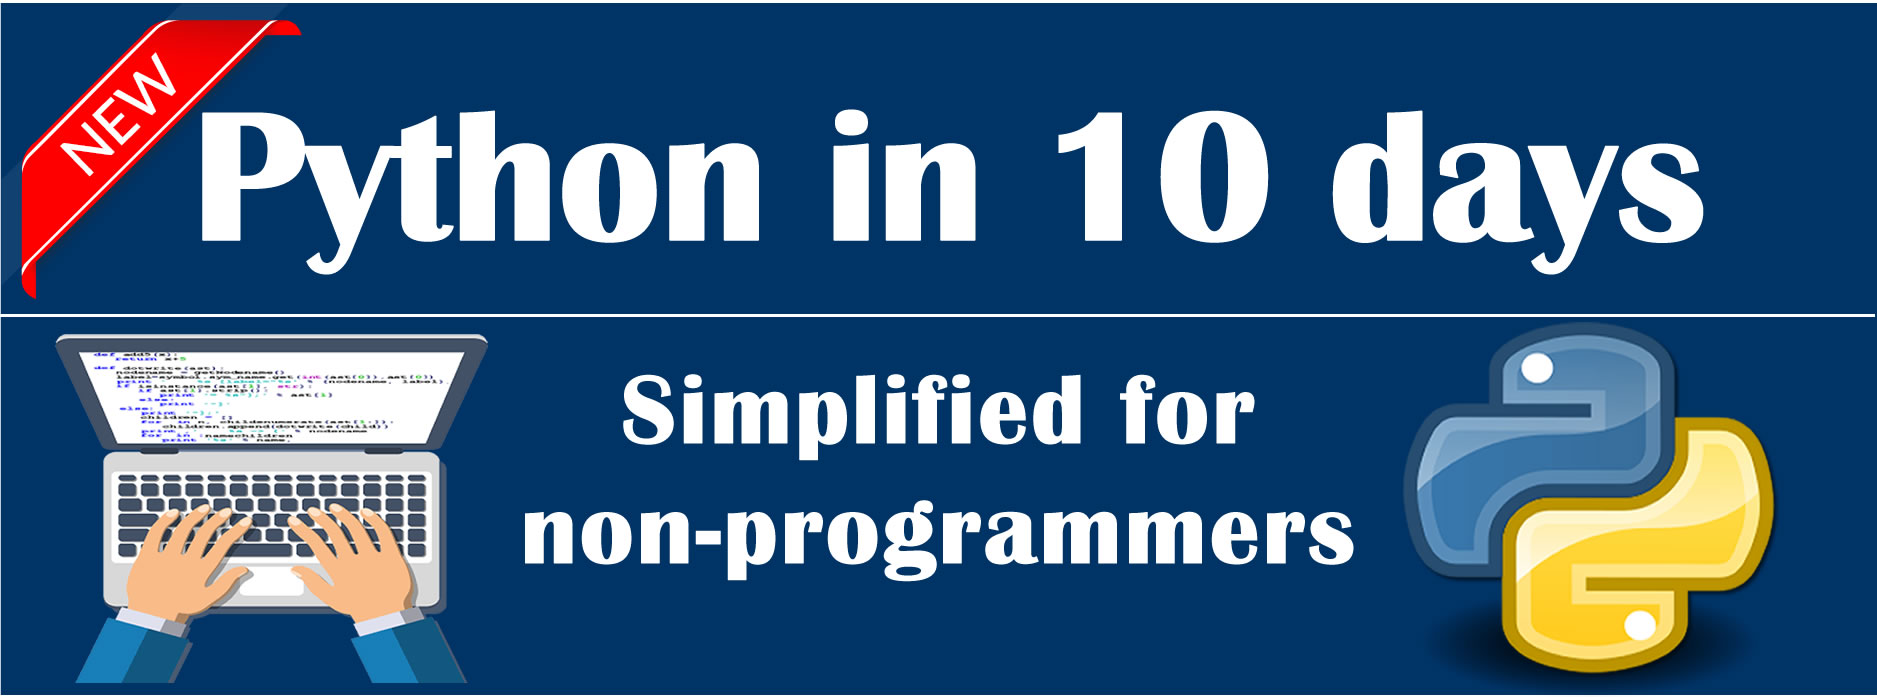 Python in 10 Days Course Outline